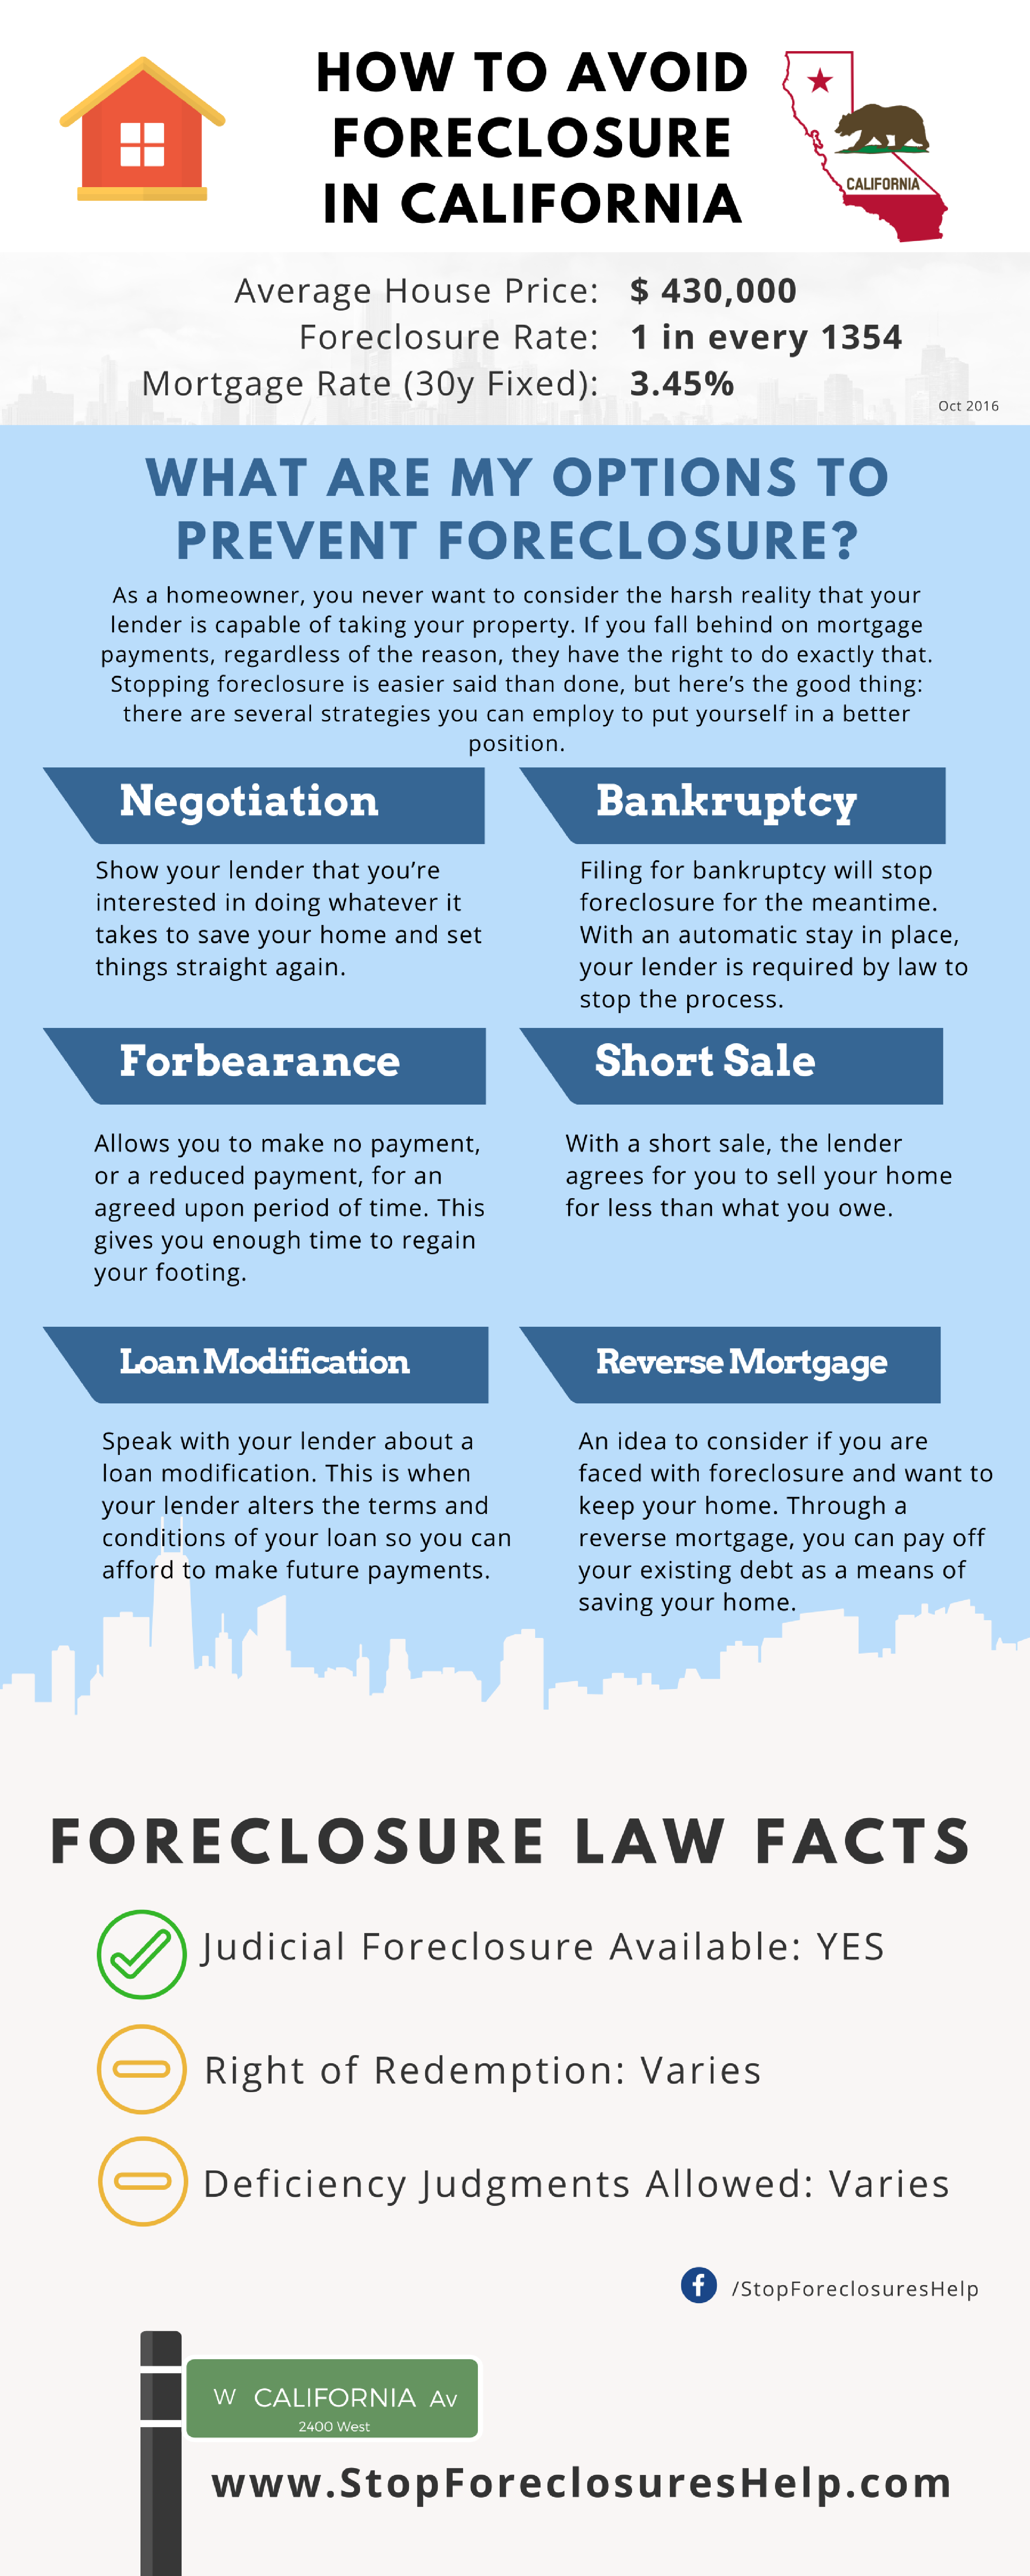 Ten things you can do to prevent losing your home in a foreclosure.